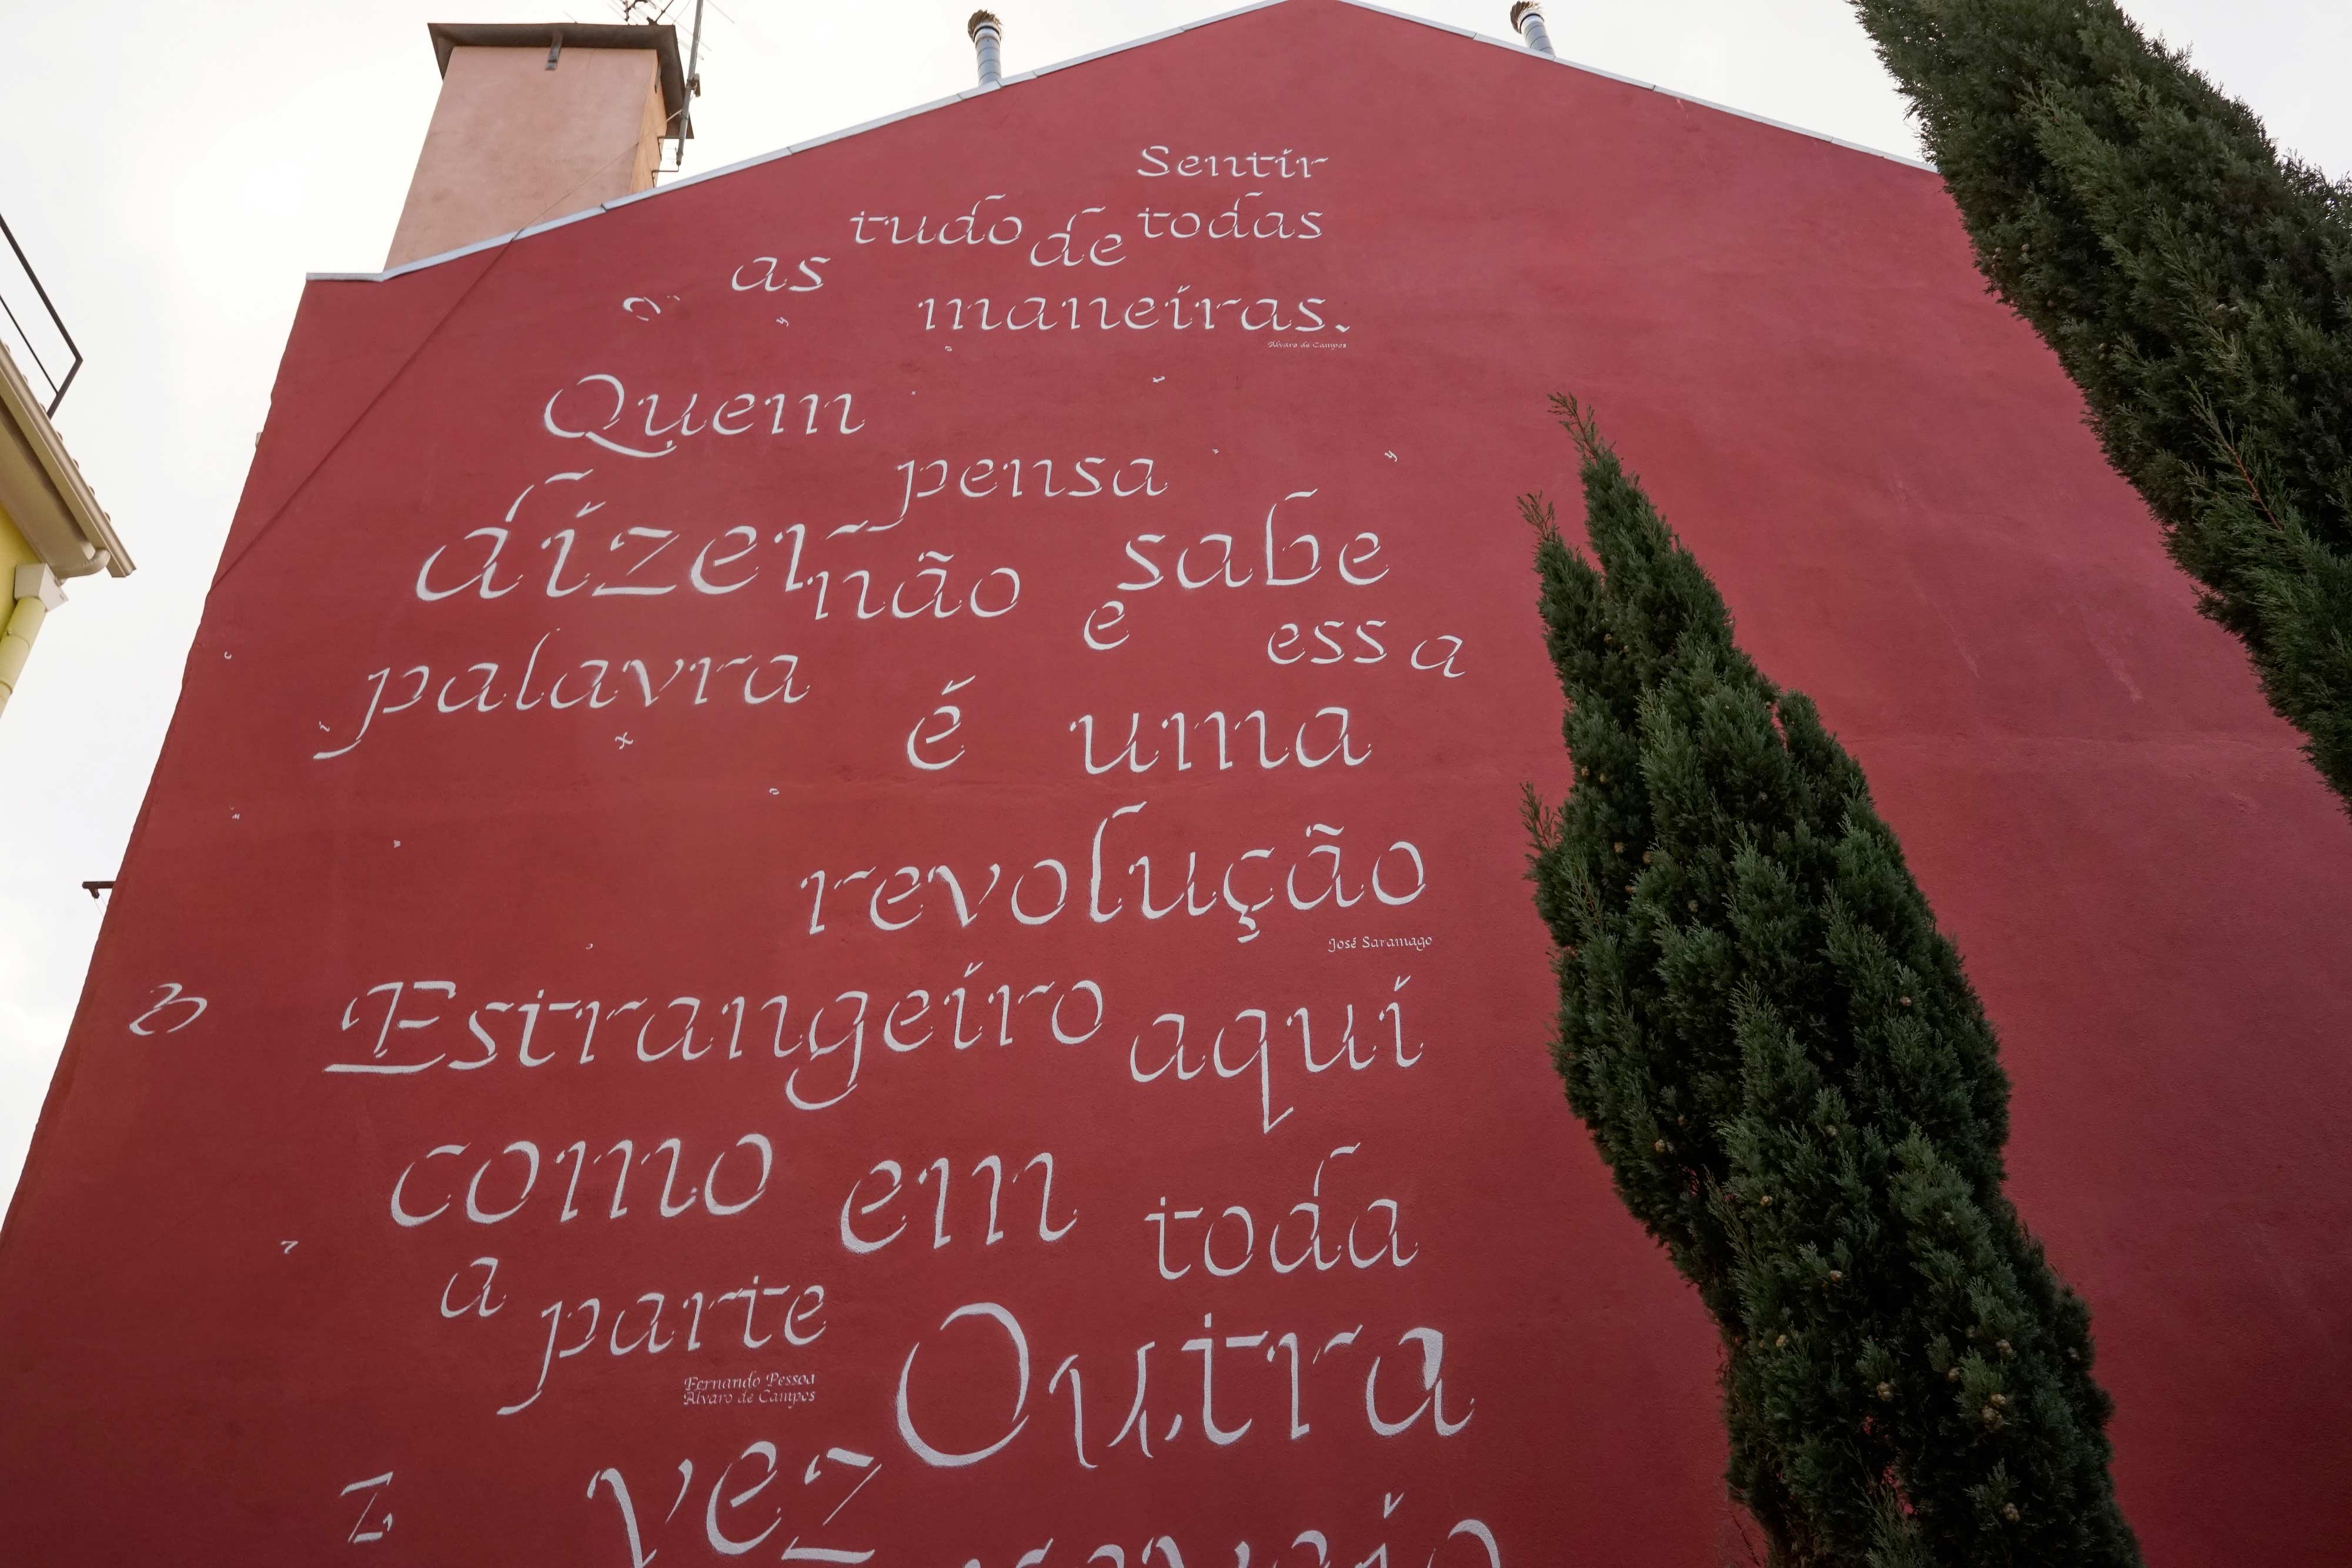 To Pessoa and Saramago: a poetry homage by Opiemme in Lisbon, Portugal. Artes & contextos Opiemme3